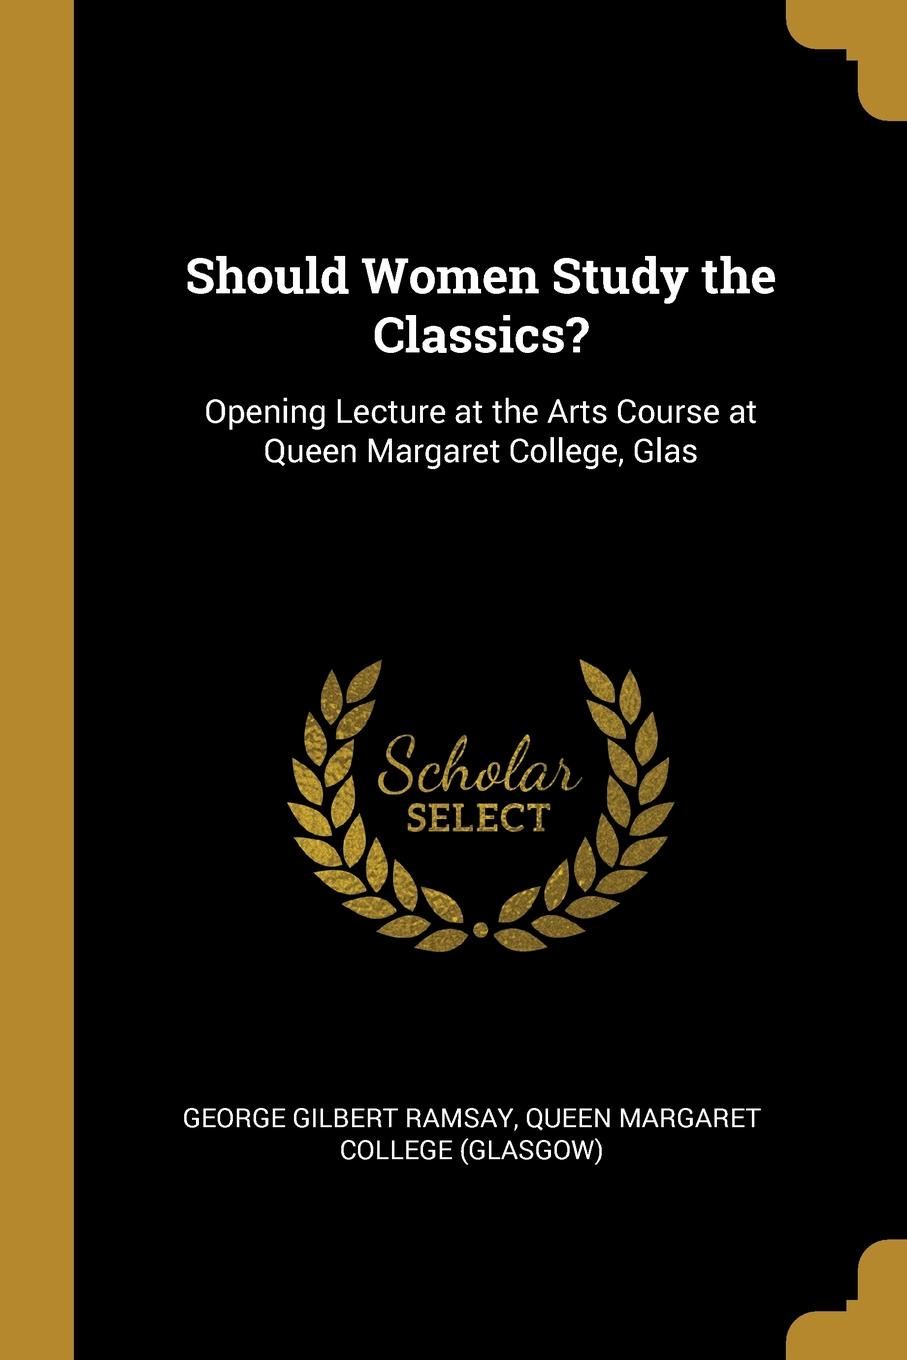 George Gilbert Ramsay. Should Women Study the Classics.. Opening Lecture at the Arts Course at Queen Margaret College, Glas